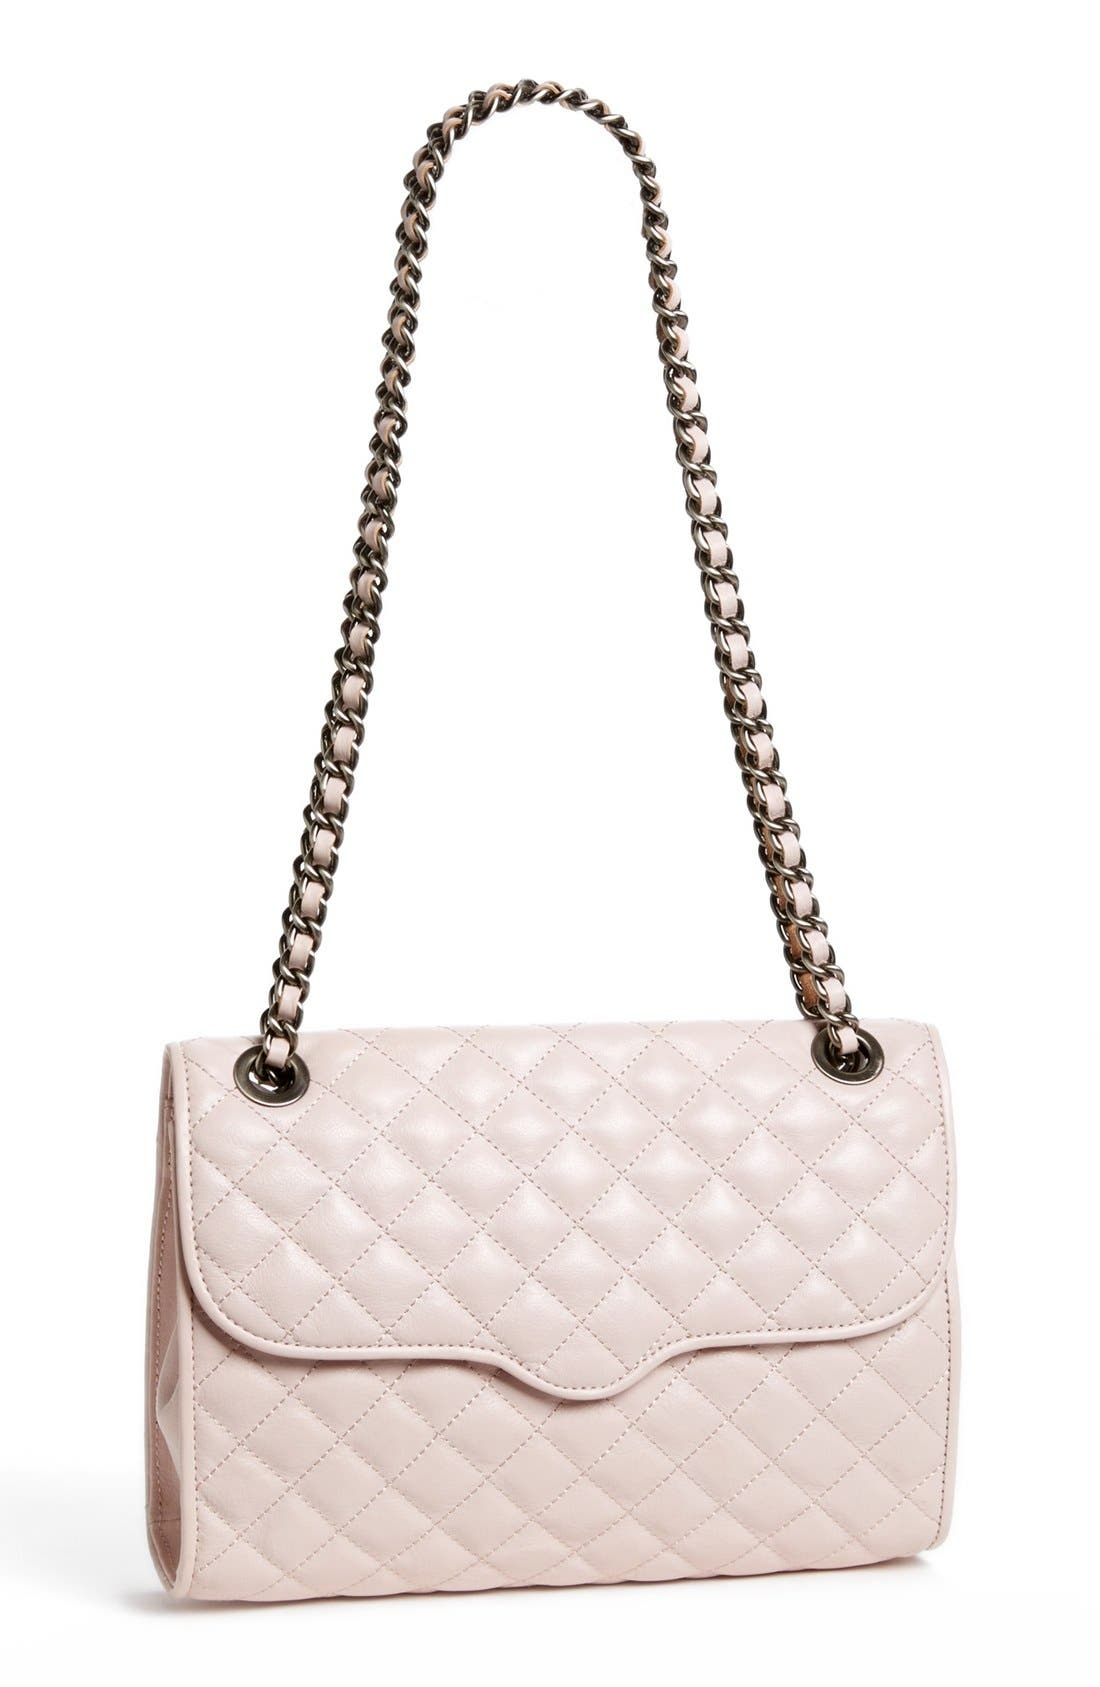 Main Image - Rebecca Minkoff 'Quilted Affair' Convertible Shoulder Bag